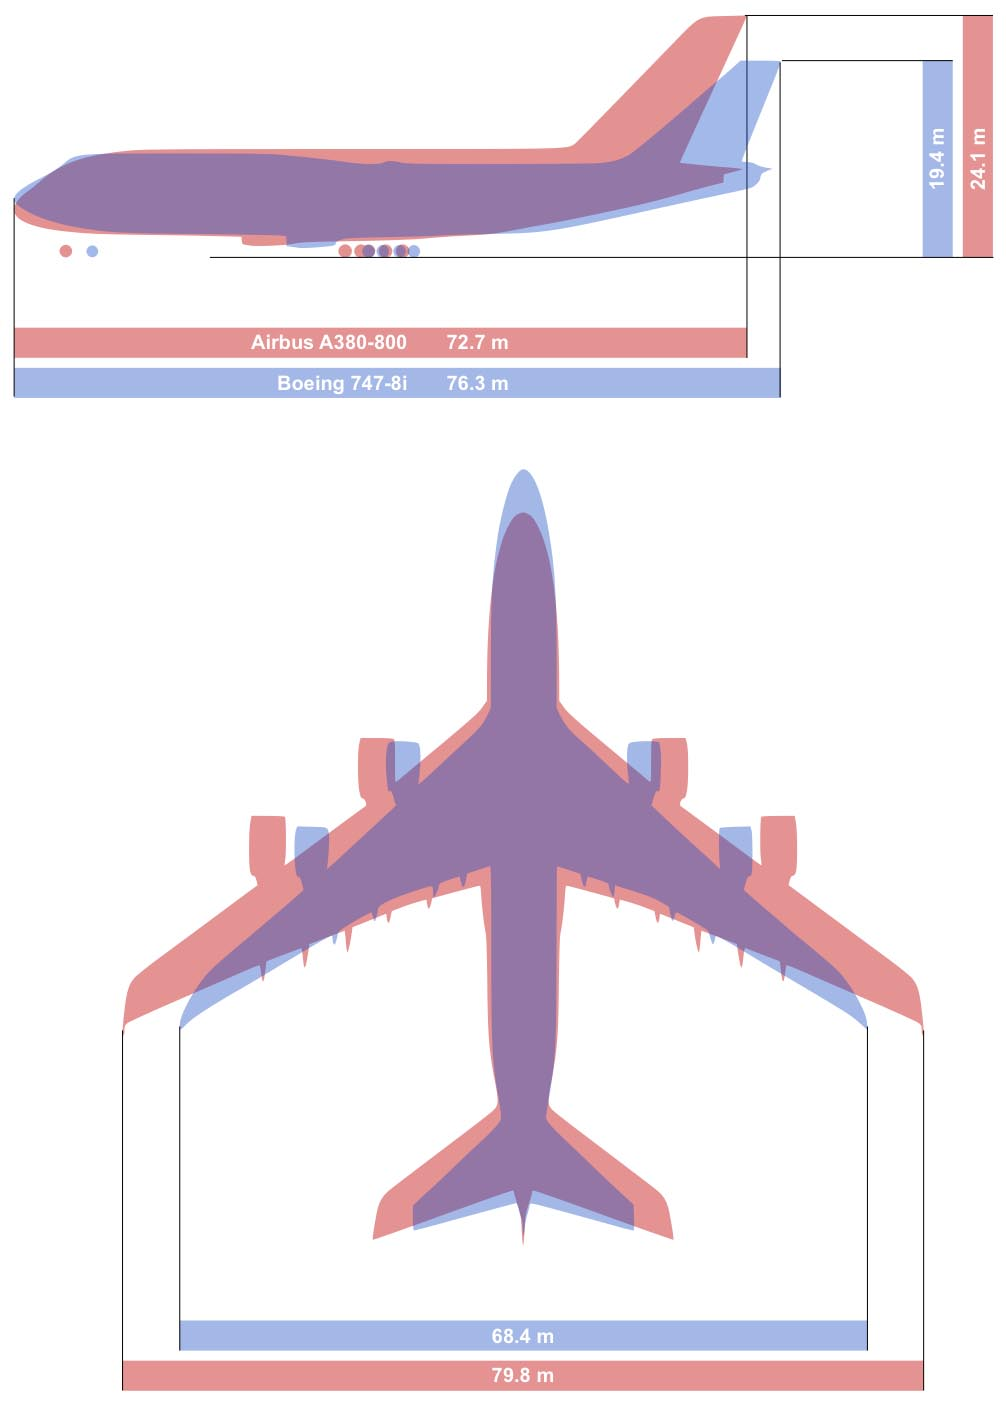 Boeing 747 vs. Airbus A380 Size Comparison